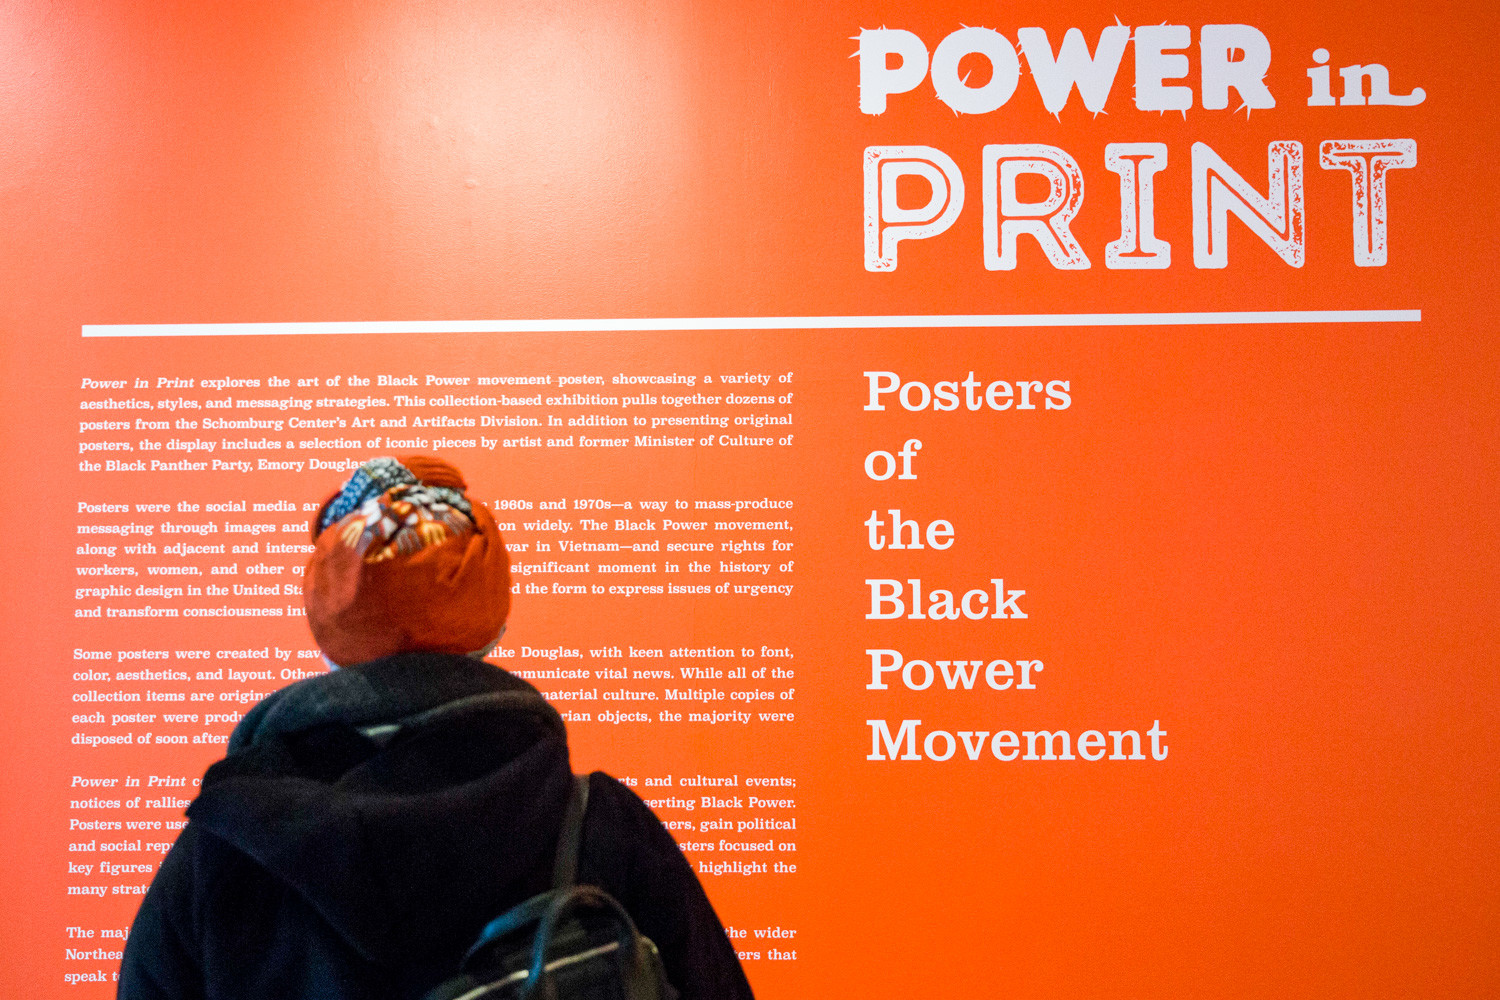 With nearly 60 pieces, 'Power in Print' at Schomburg Center for Research in Black Culture in Harlem, shows the posters of the black power movement. It was a dramatic change in how people organized politically and how they represented themselves, says Mark Naison, a history and African-American studies professor at Fordham University.